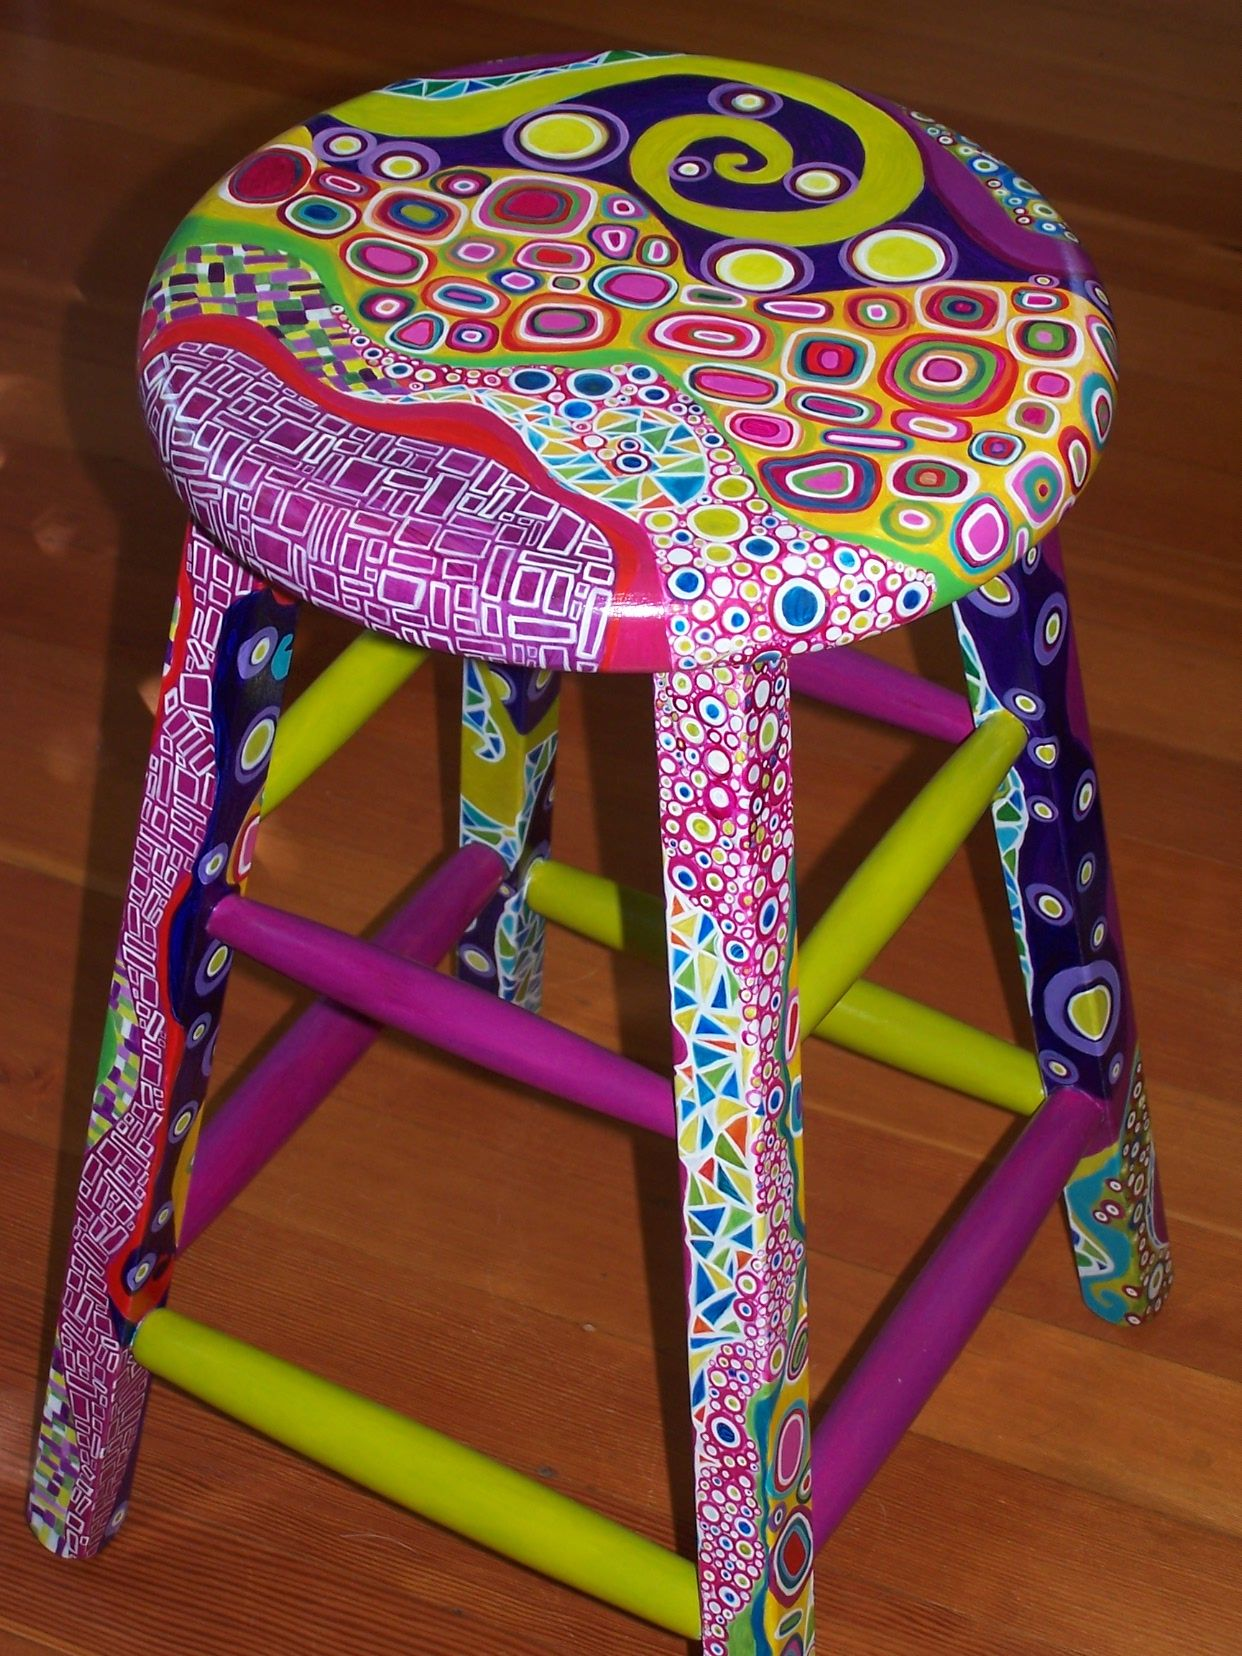 Funky painted furniture ideas - Paint A Wooden Stool With Acrylic Paints Get Creative So